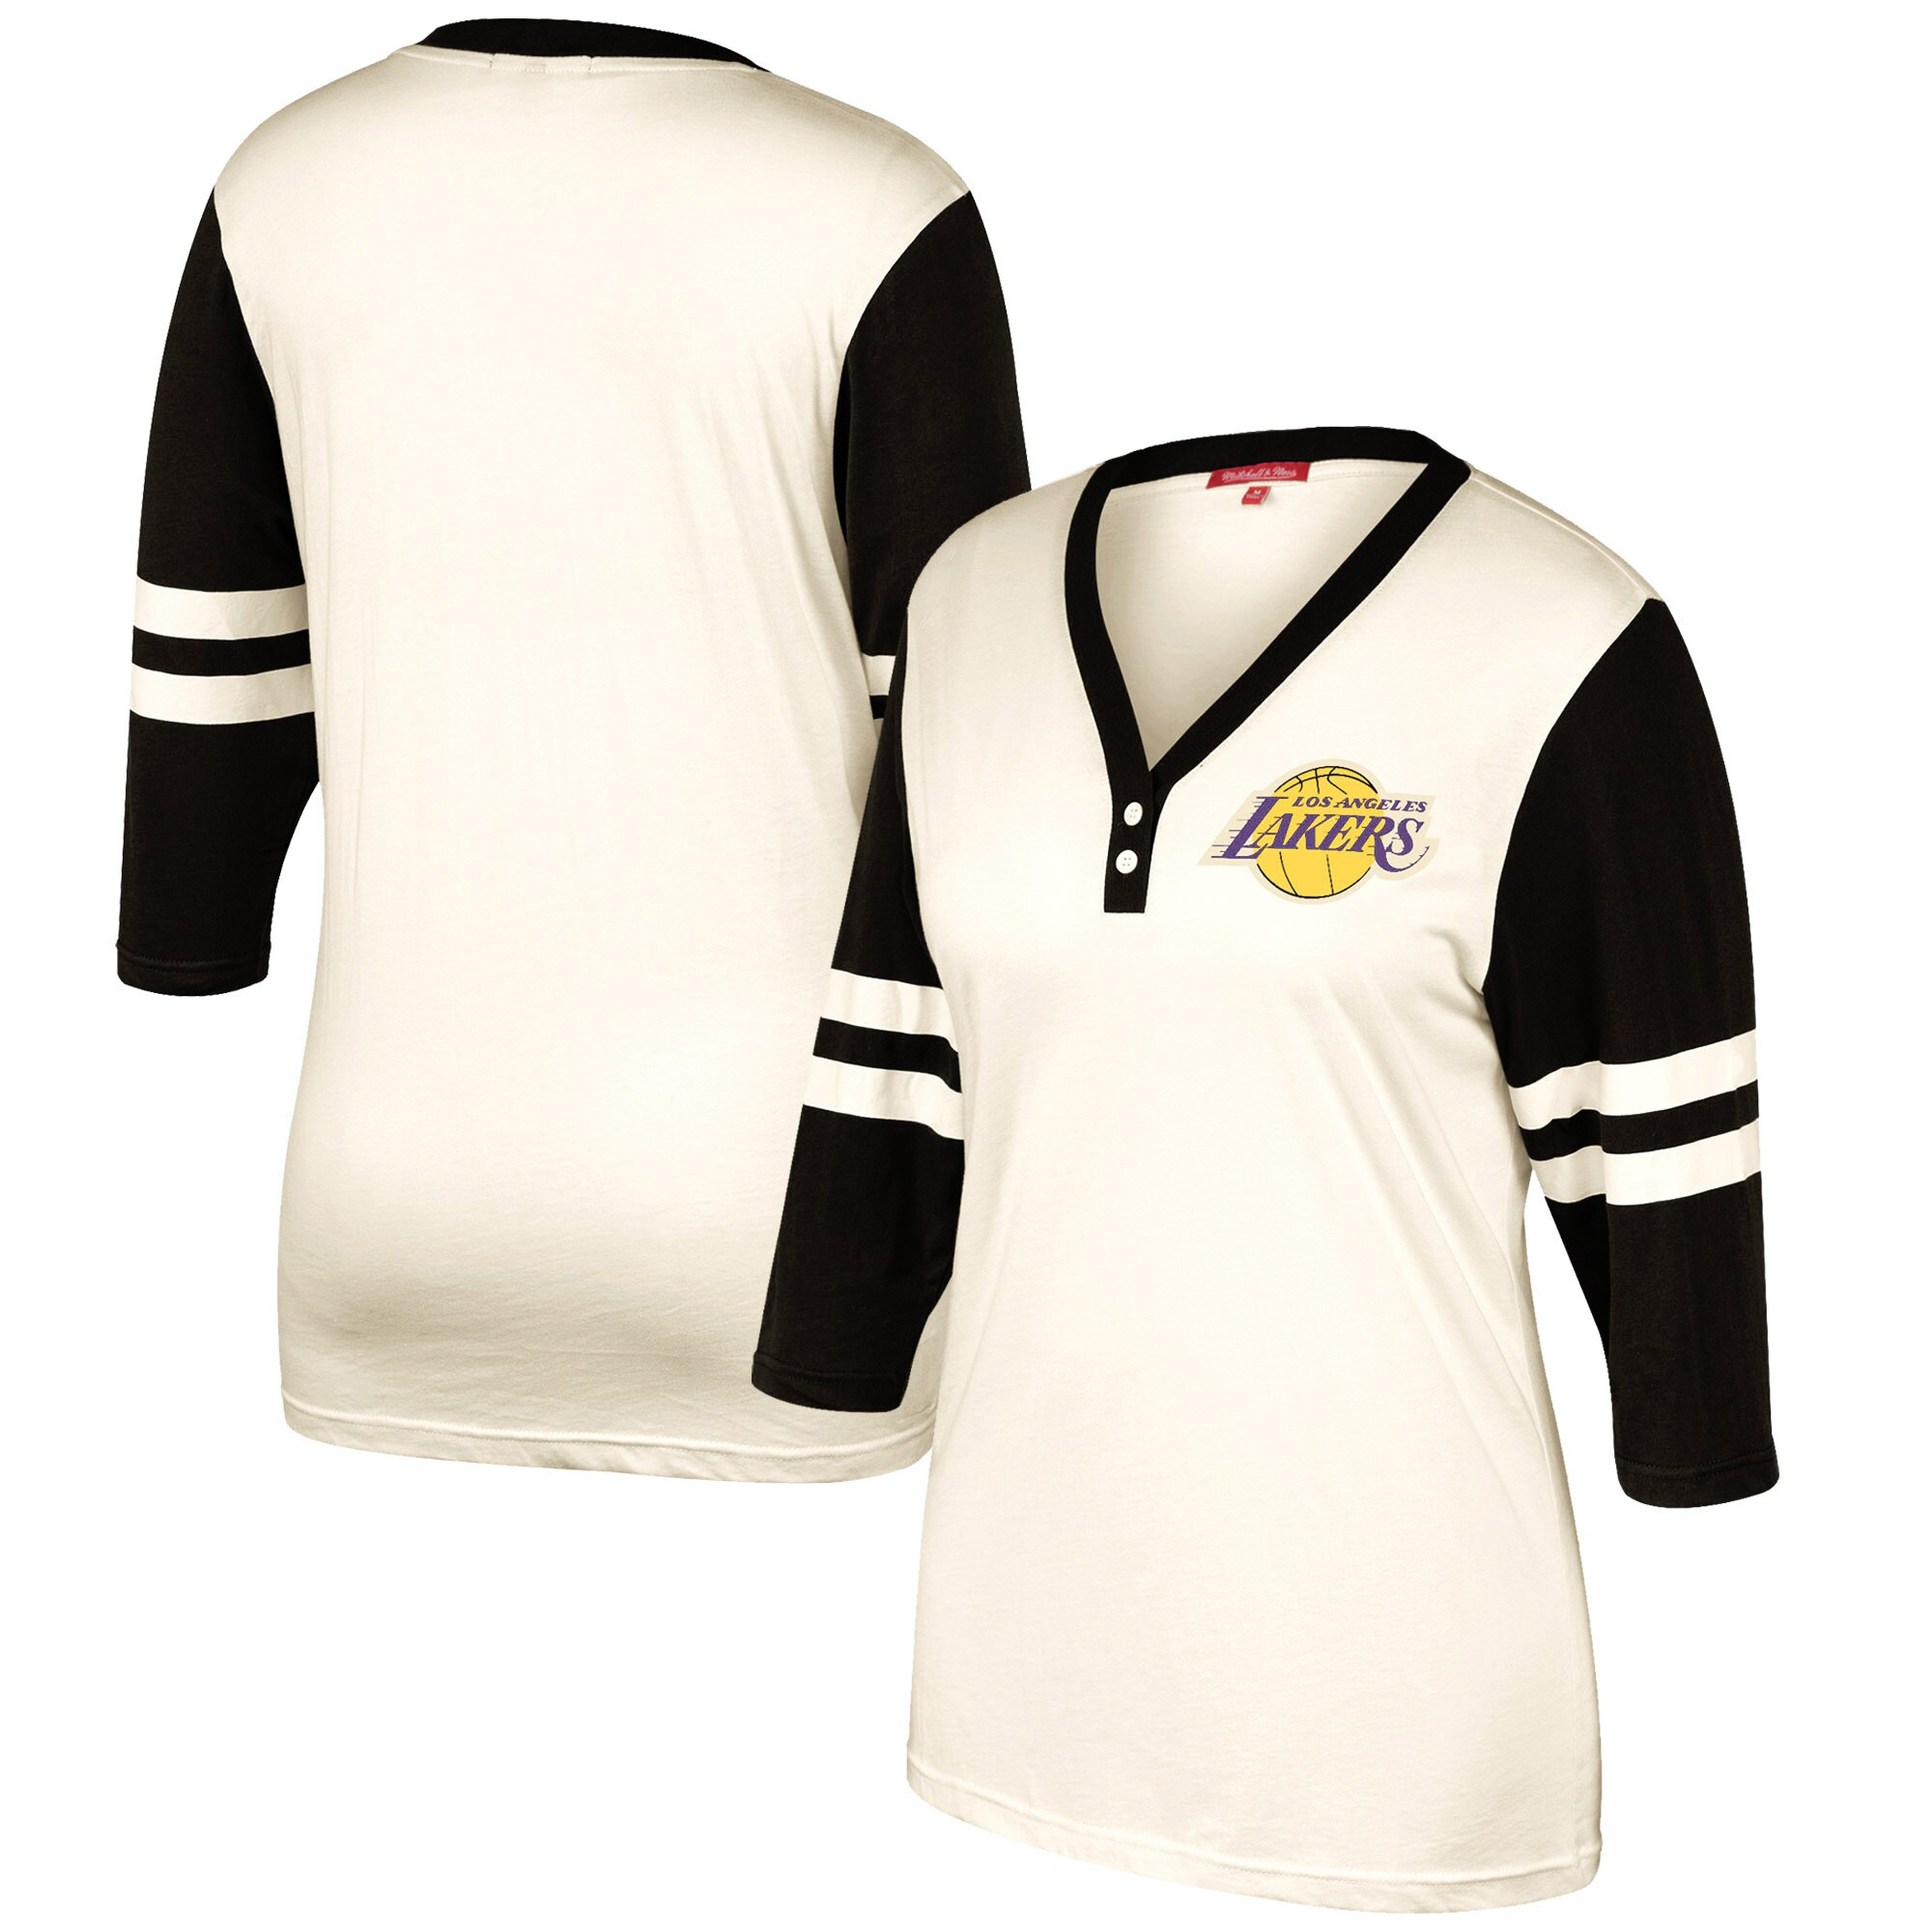 Los Angeles Lakers Mitchell & Ness Women's Hardwood Classics Shoot Out V-Neck 3/4-Sleeve T-Shirt - Cream